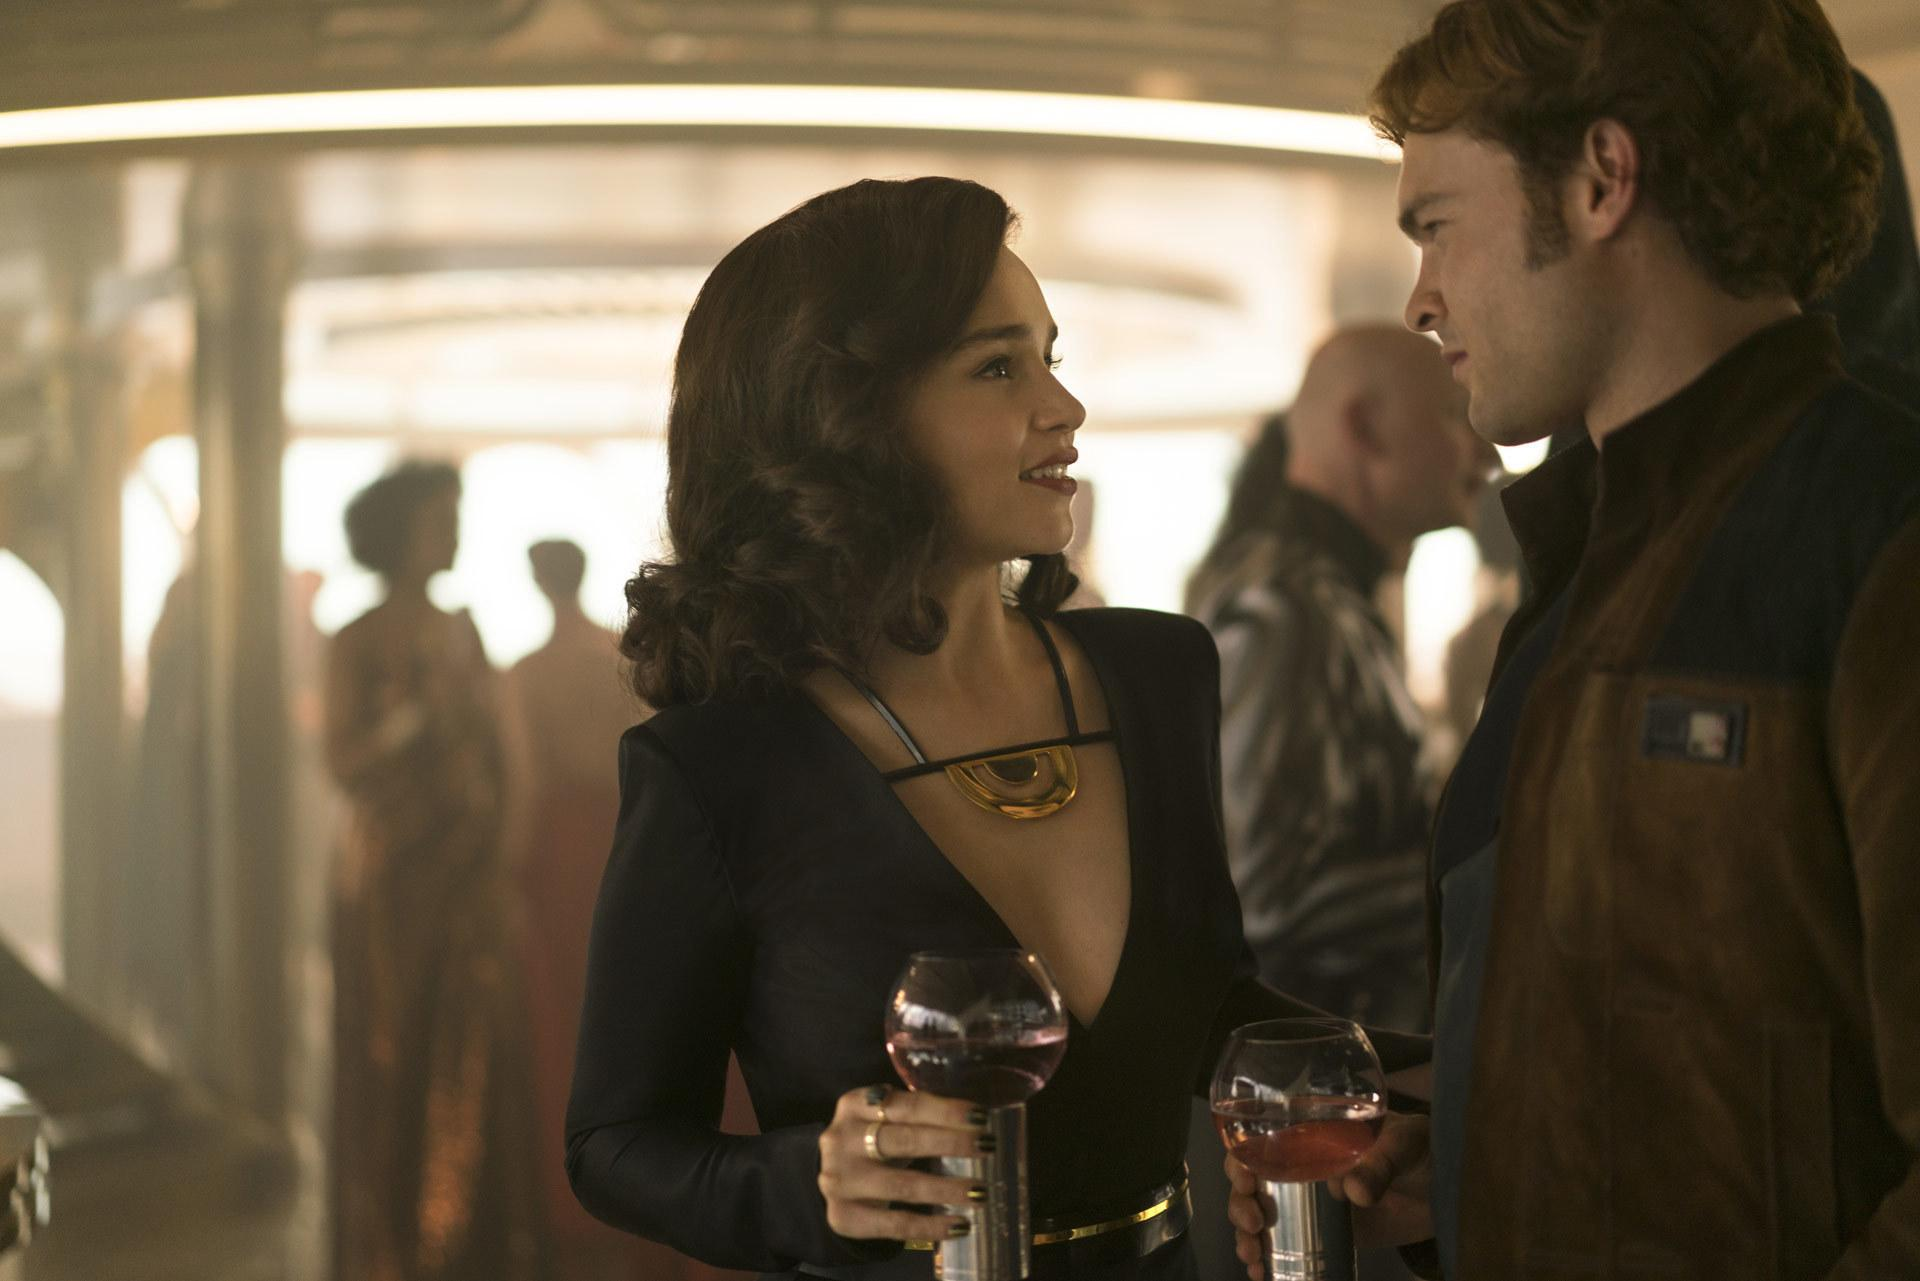 Solo: A Star Wars Story (2018) - Financial Information